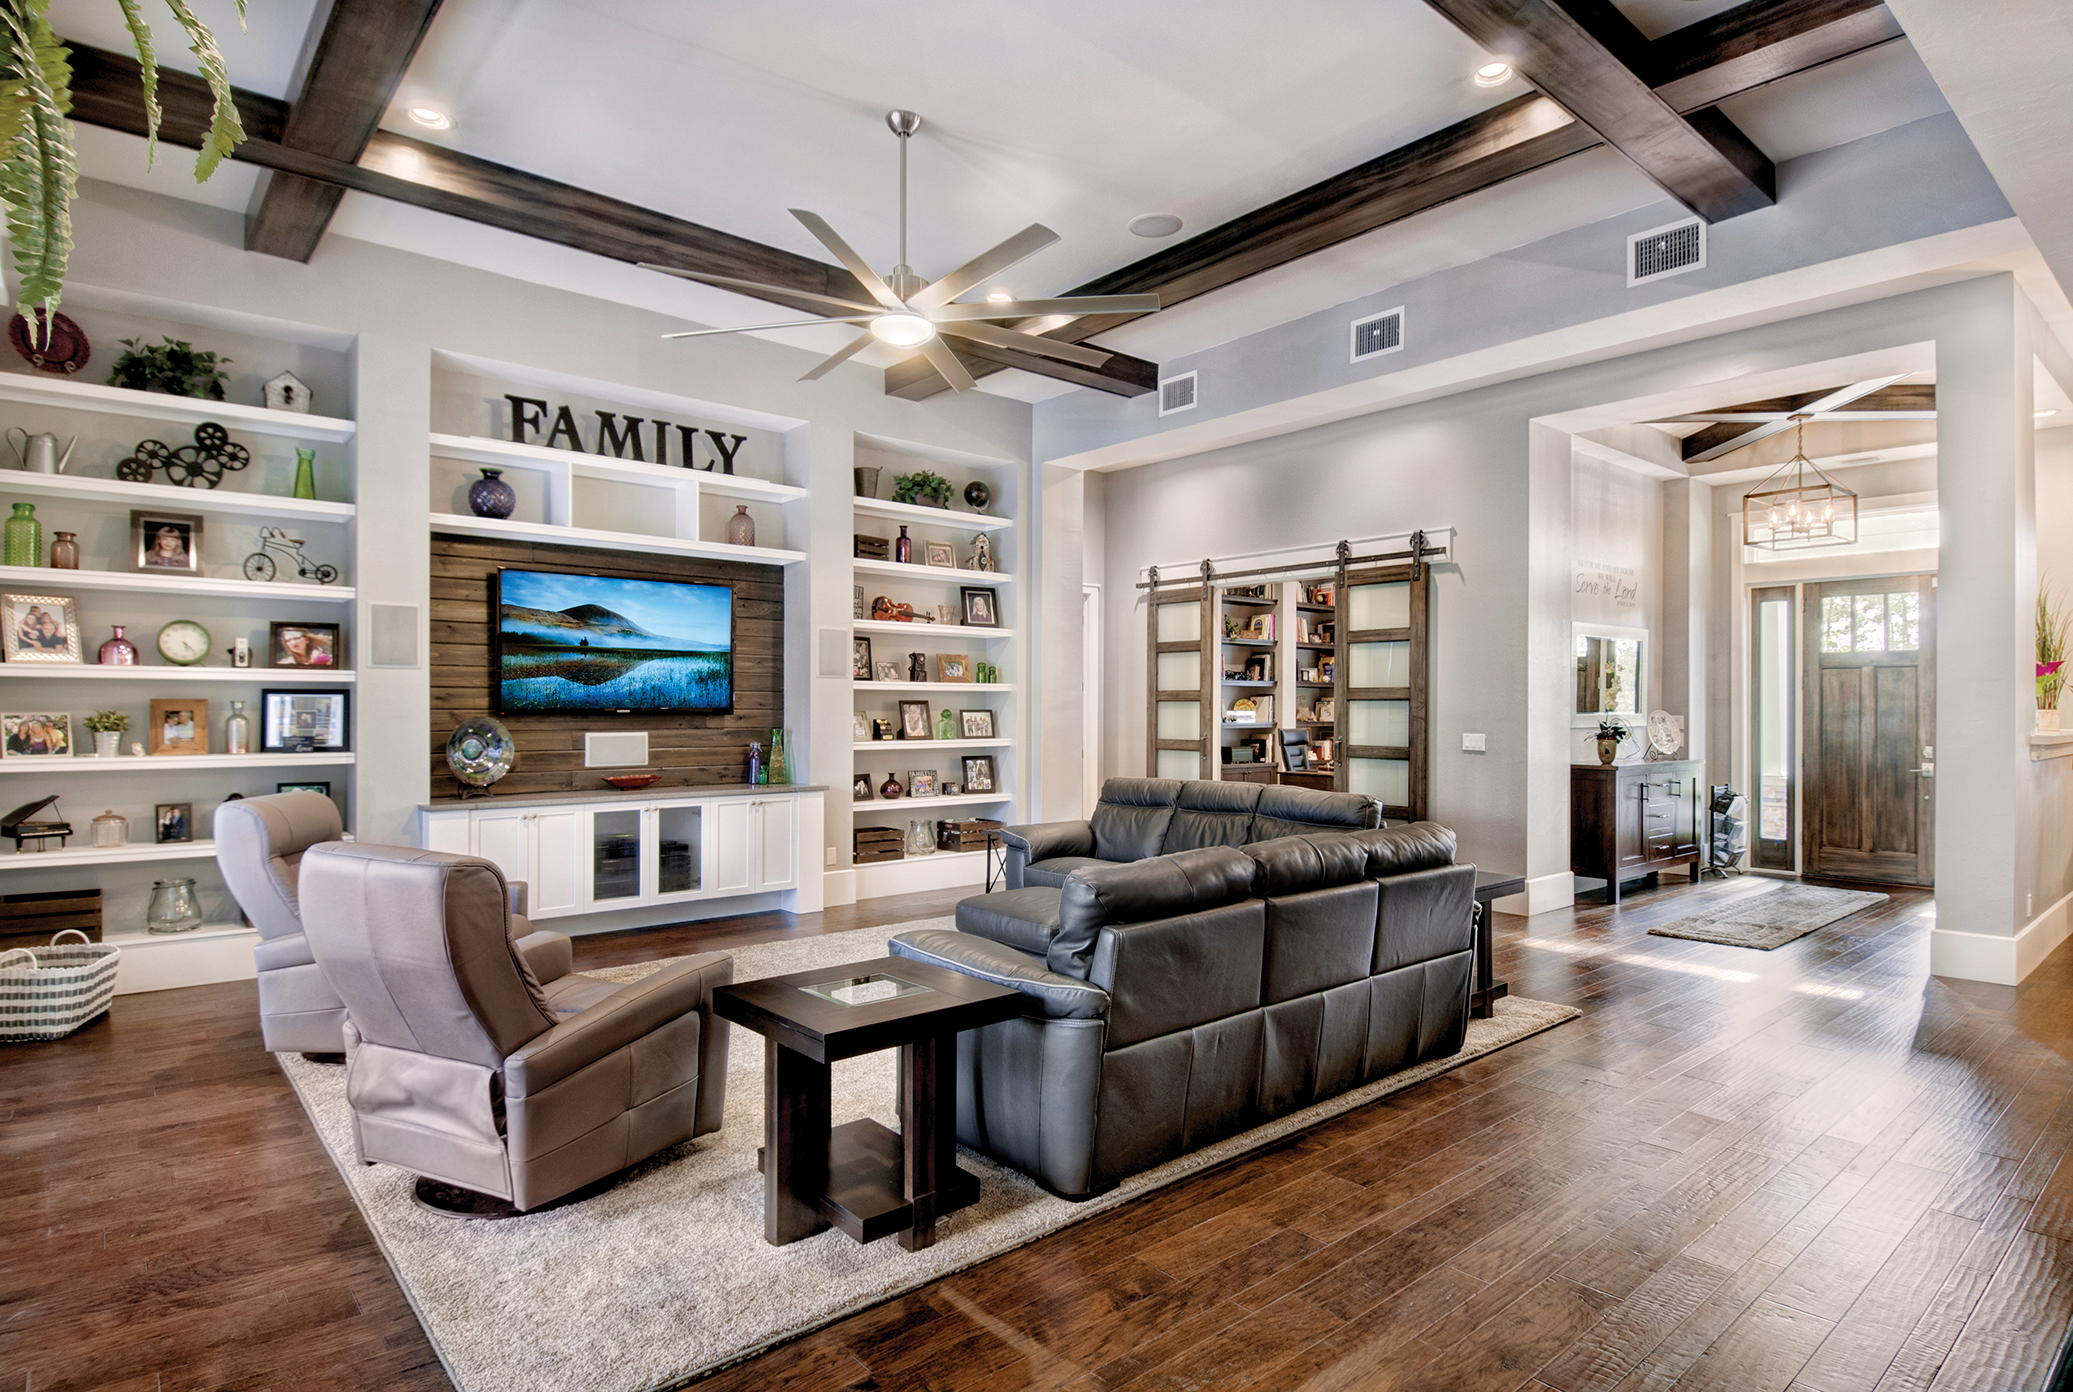 """The focal point of the comfortable great room is a set of built-ins with a repurposed wood accent. """"We were able to take some of the leftover wood from the ceilings on the lanai and use it in the great room,"""" says Sater. """"It's so much better to look for creative alternatives than to throw something out."""" Under beams that match the grids in the windows, leather sleeper sofas are both comfortable and practical and act as overflow sleeping areas for guests. On the other end of the great room is the office, strategically placed so Sater isn't totally isolated from the rest of the house as he works. If more privacy is needed, modern barn style doors can be closed. """"While the outside of the house is traditional, my wife found she liked a more transitional look inside. It's a great combination of new and old,"""" Sater explains."""